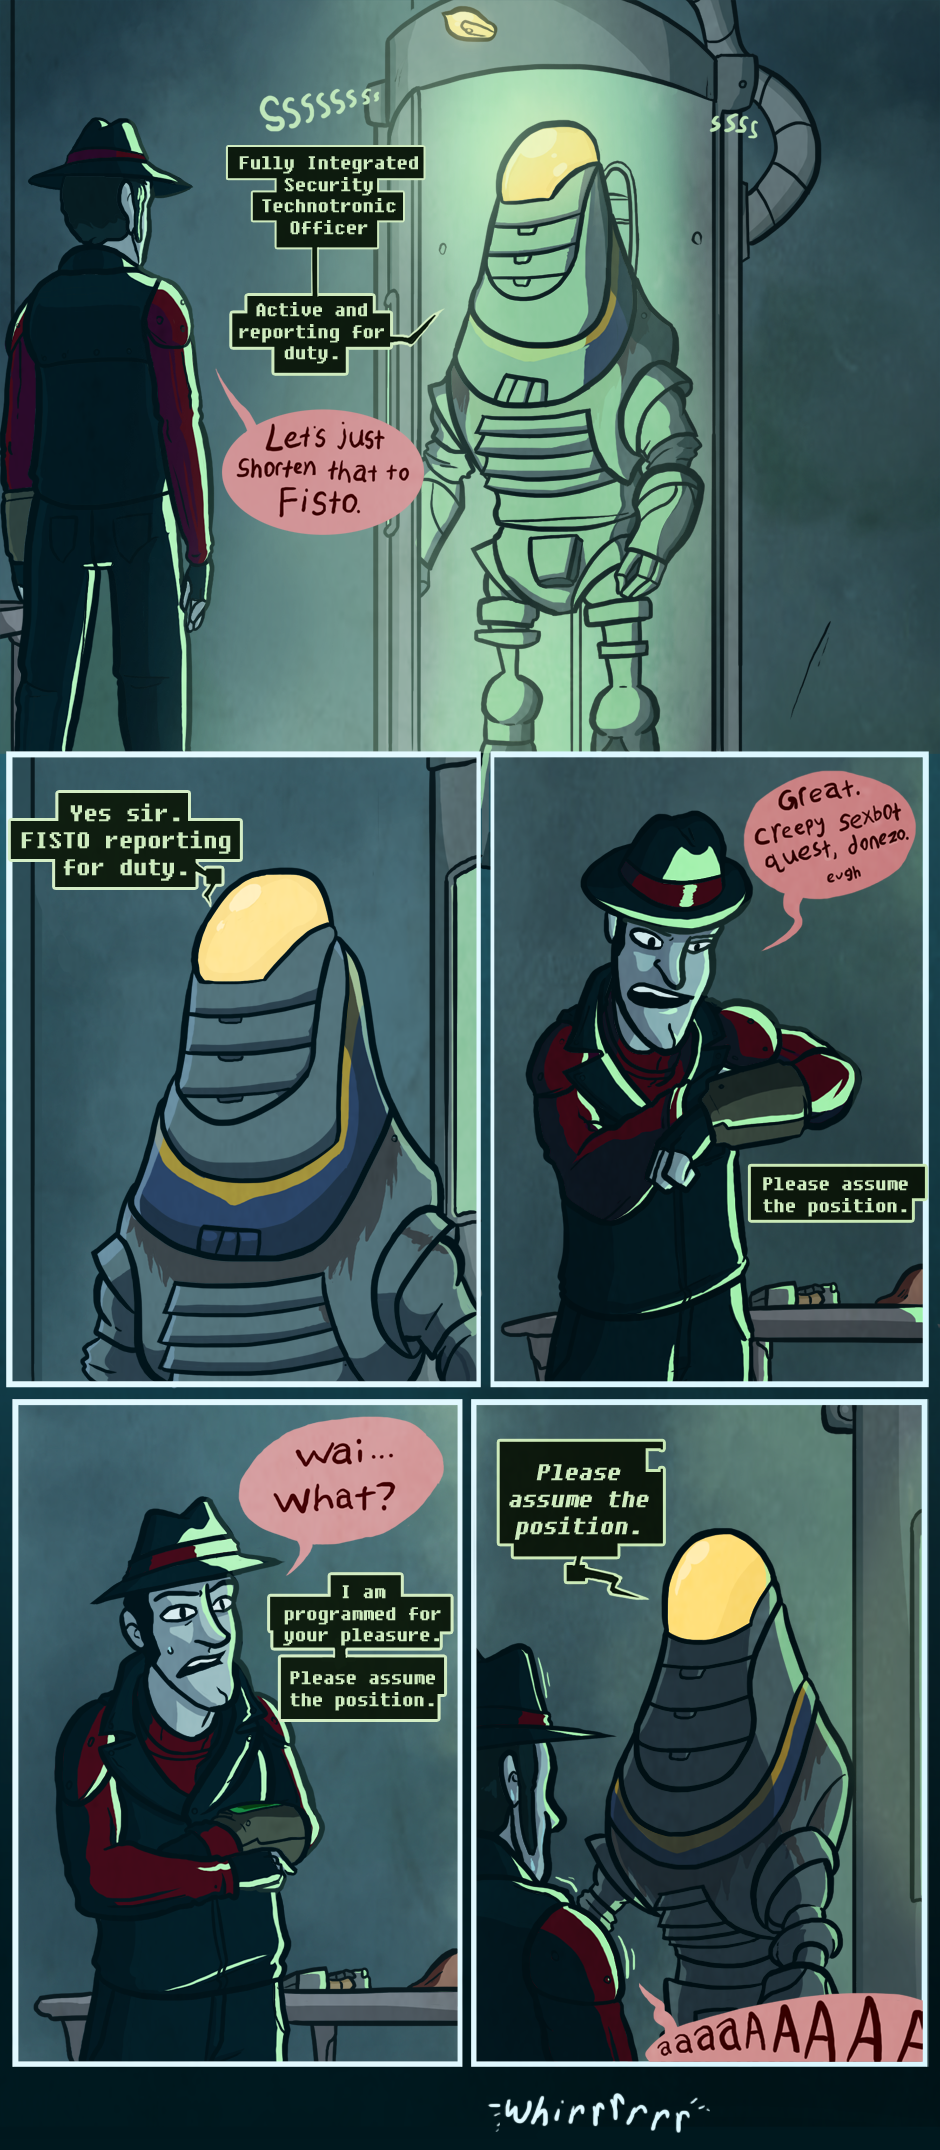 Fallout nv robot relations by eraserman on deviantart fallout nv robot relations by eraserman voltagebd Choice Image